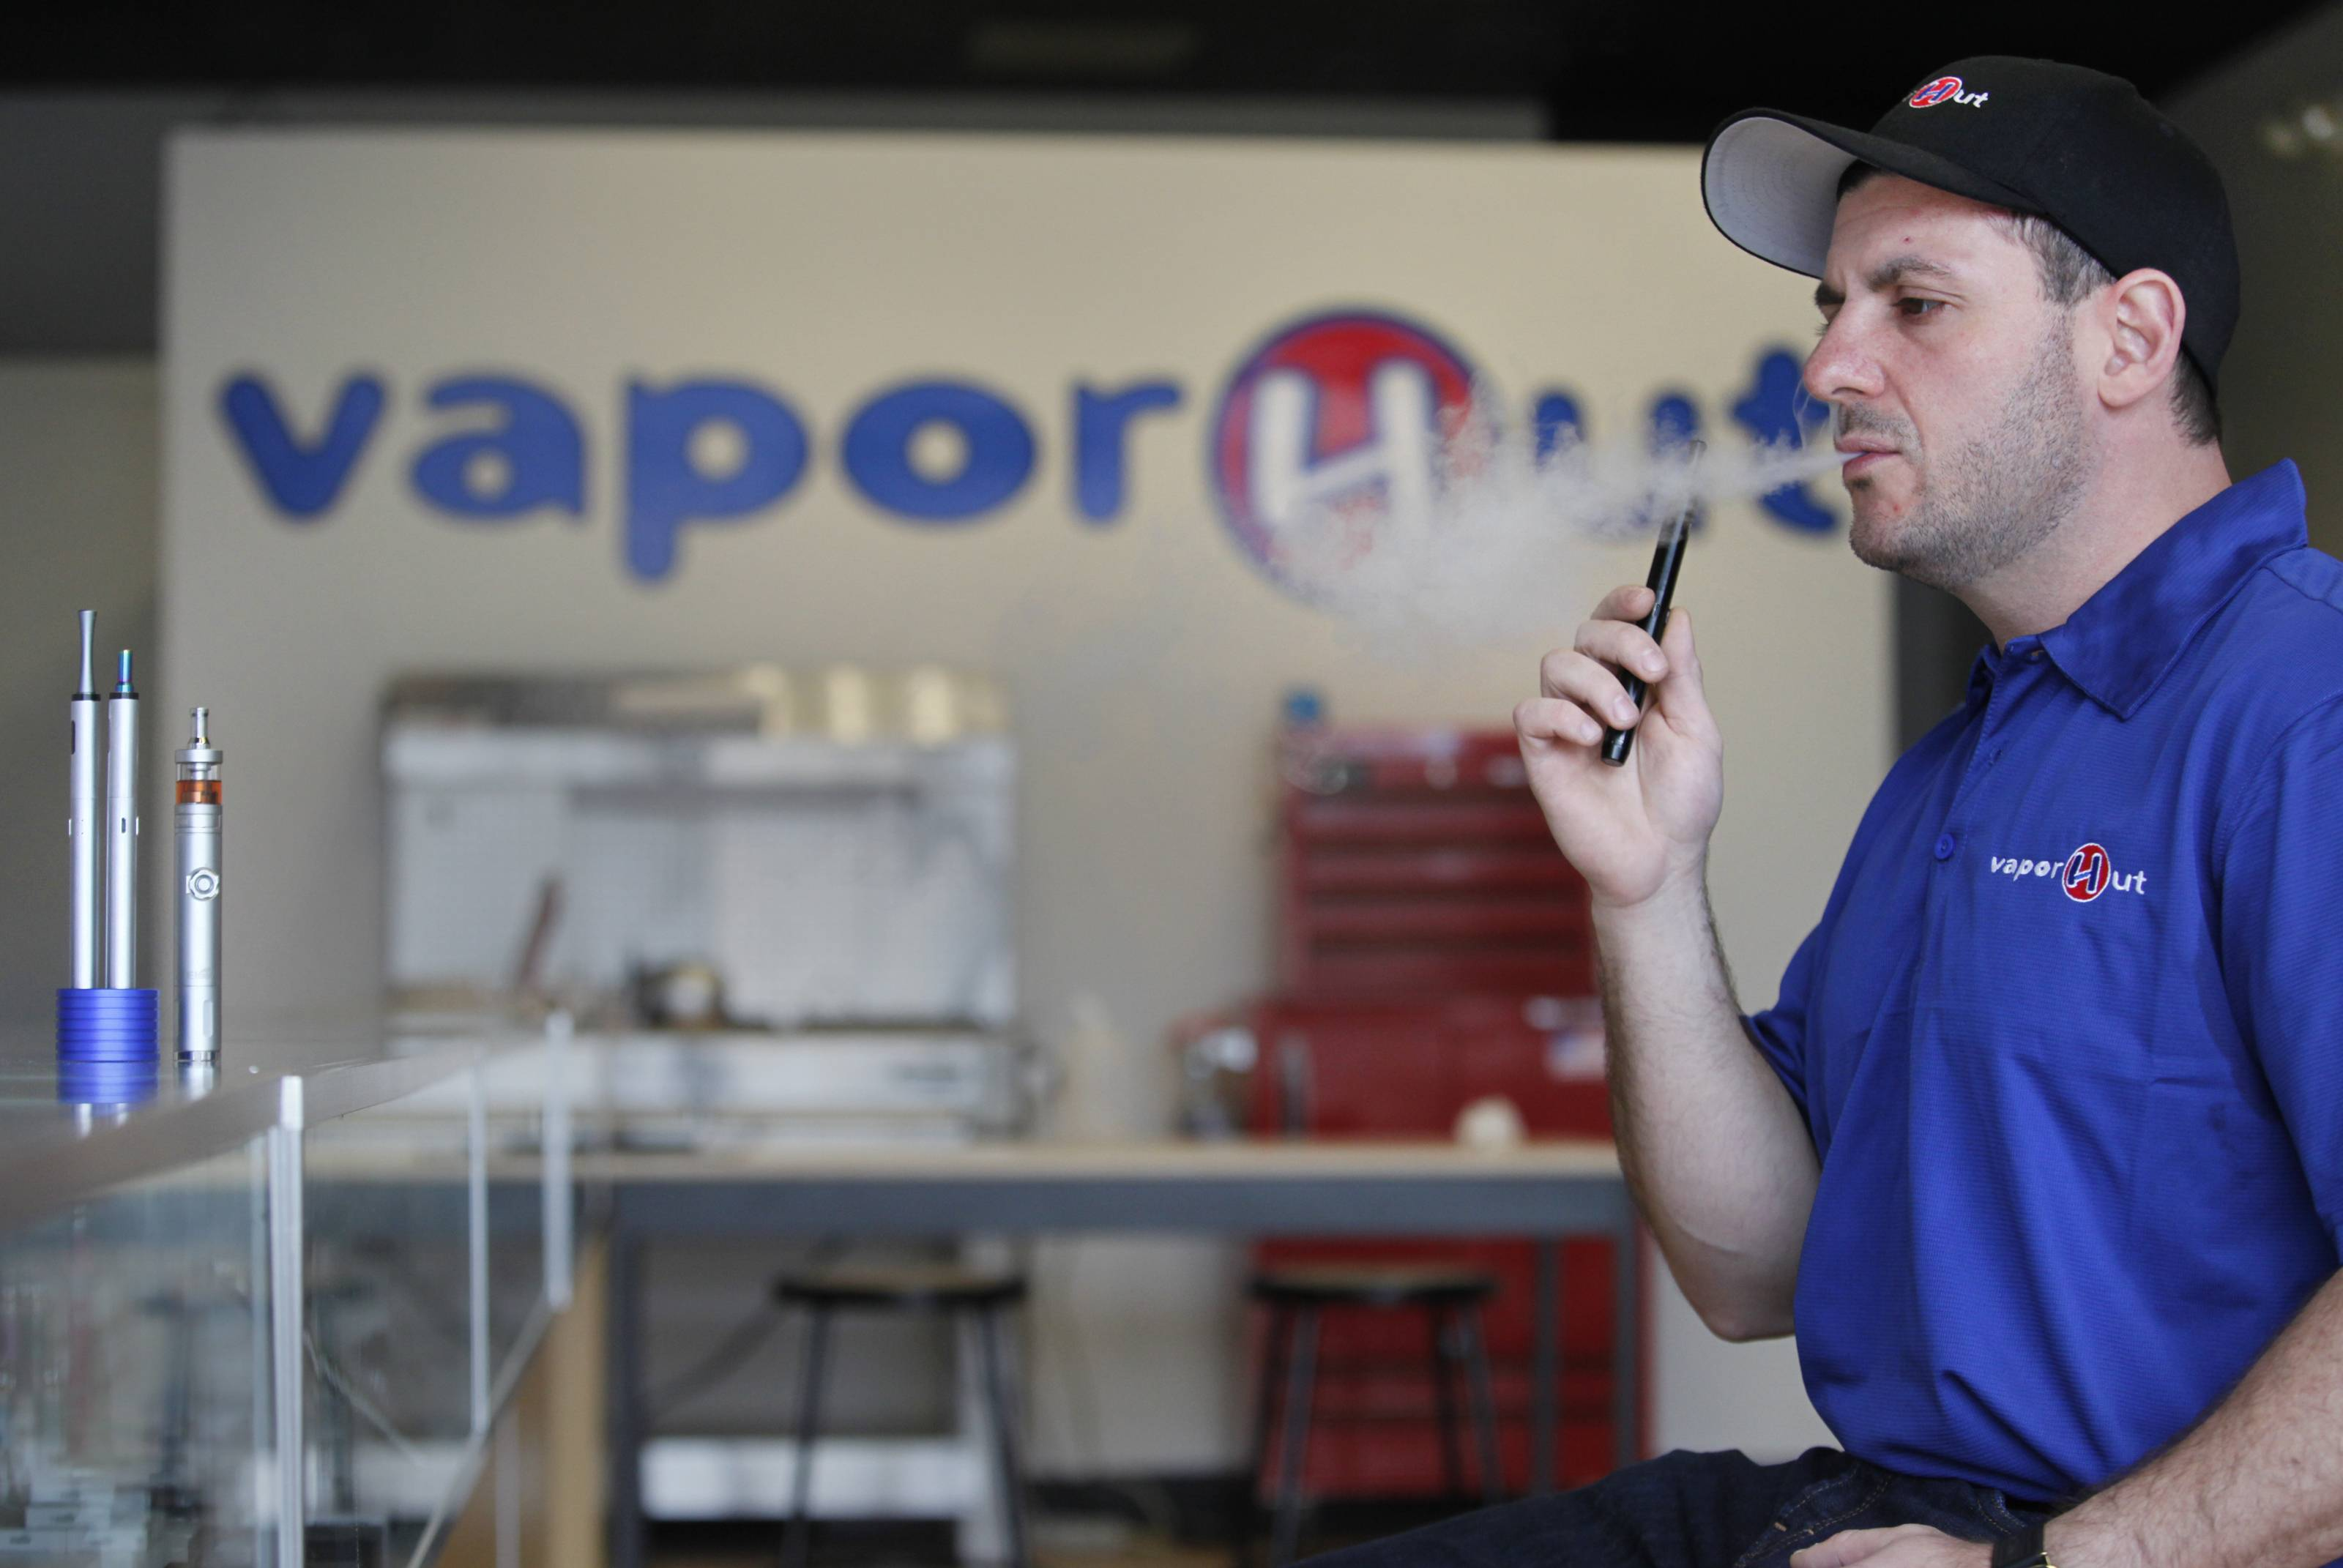 E-cigarette store opens second location in Algonquin